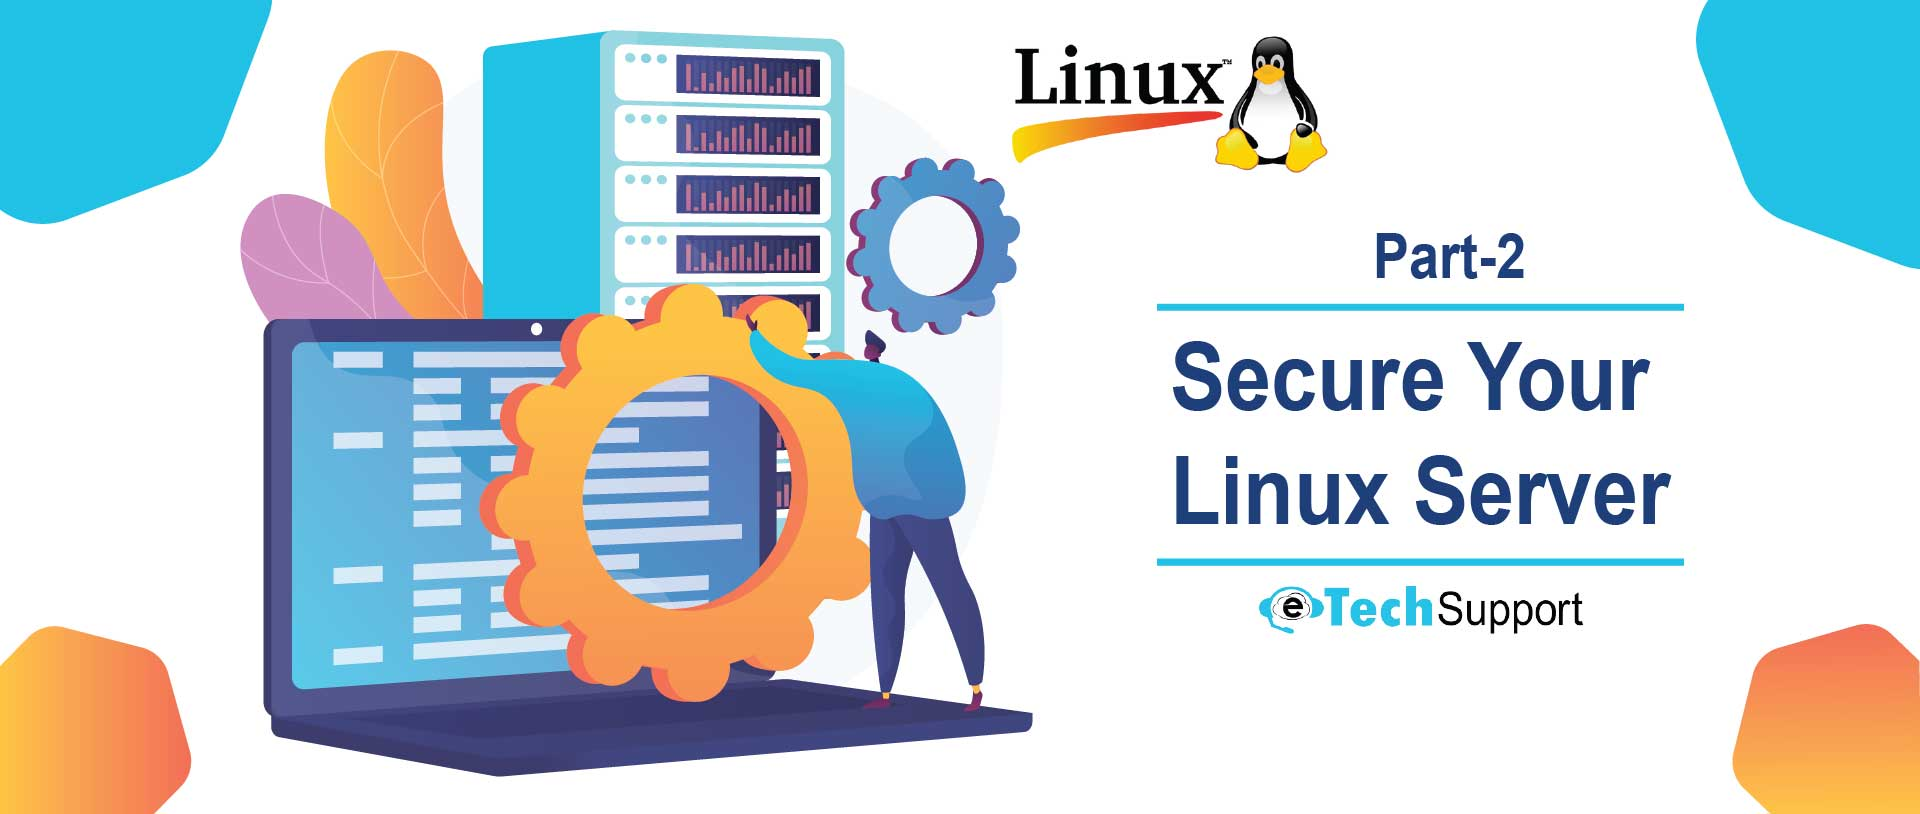 tips-secure-your-linux-server